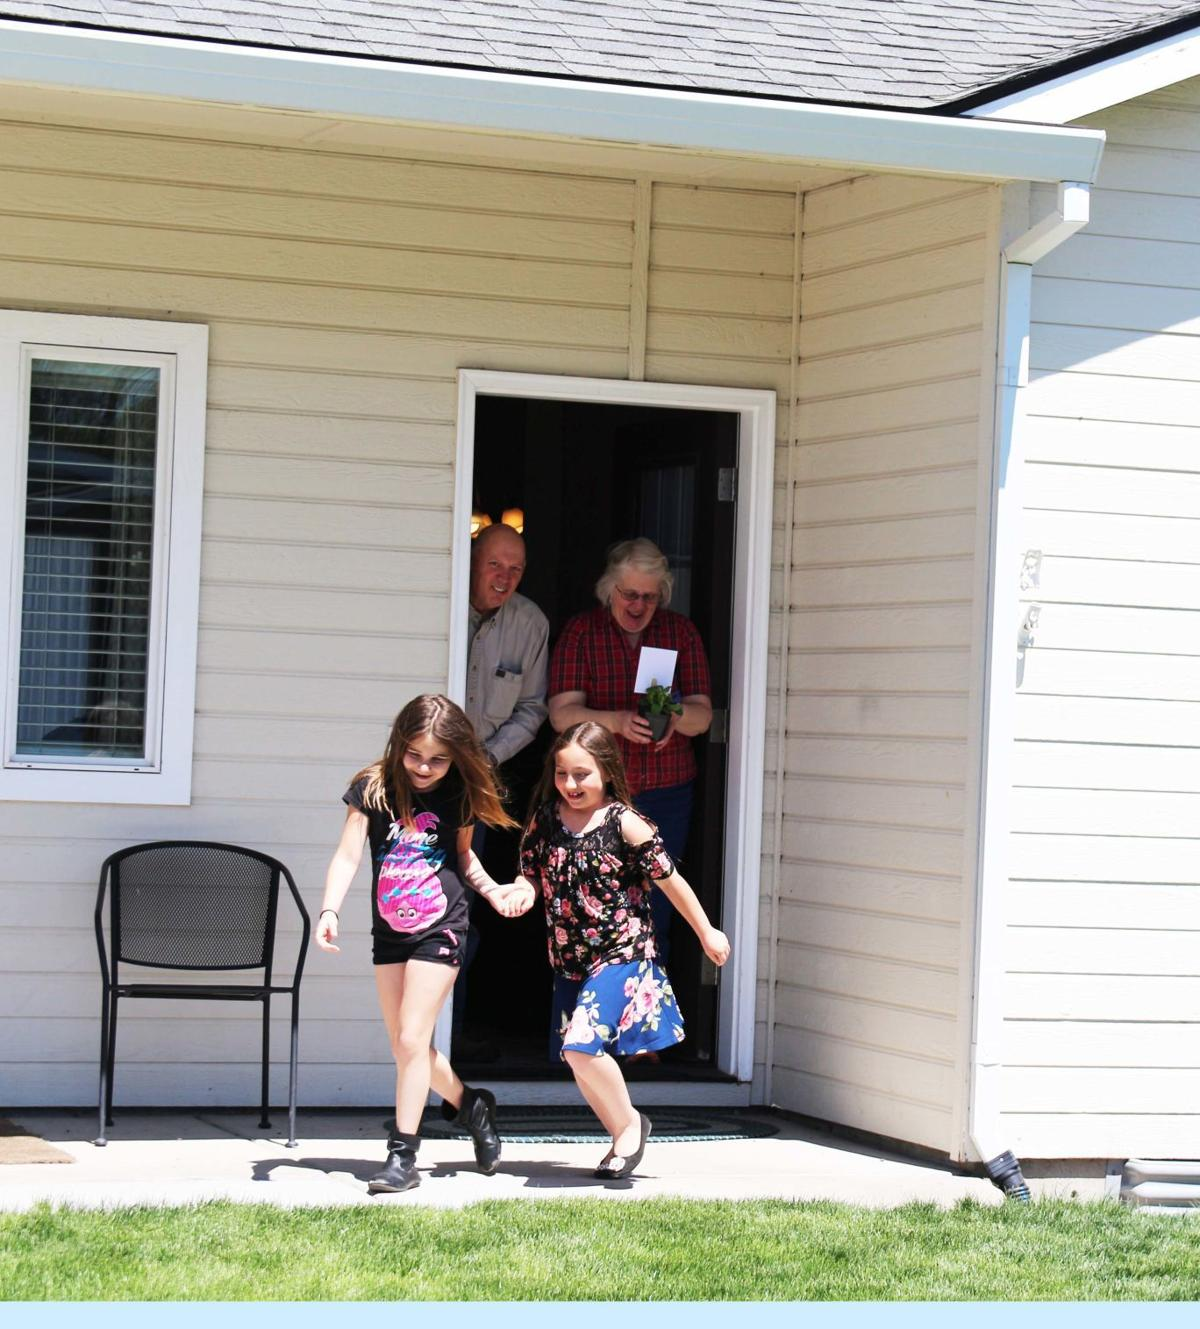 Pelican Elementary students share May Day spirit with neighbors